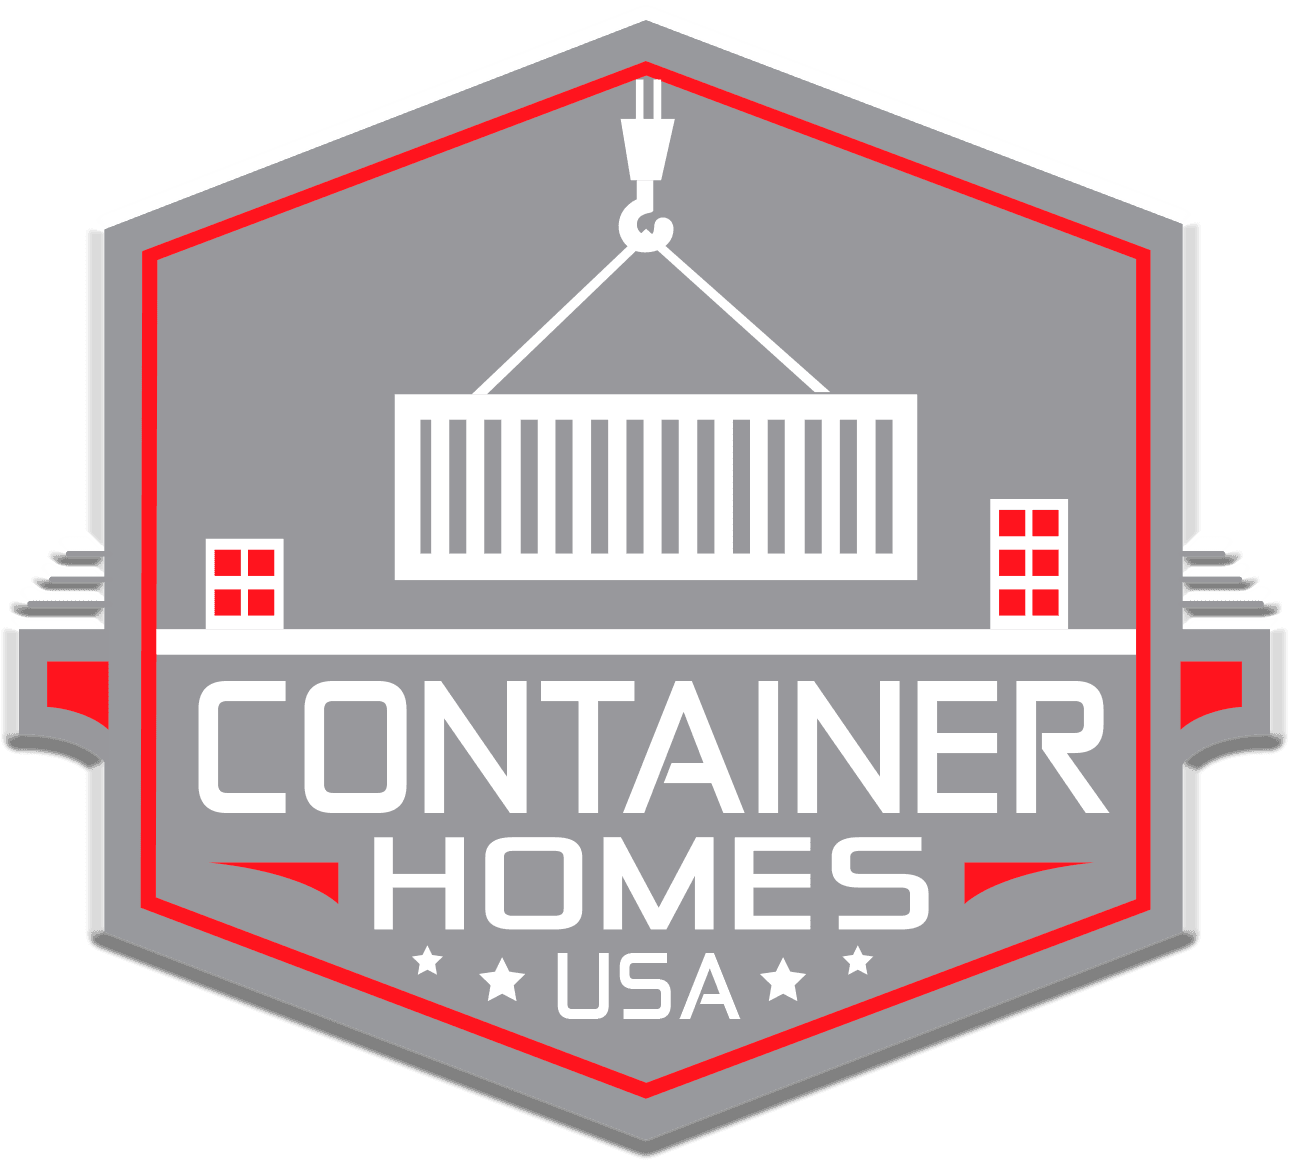 Container Homes USA